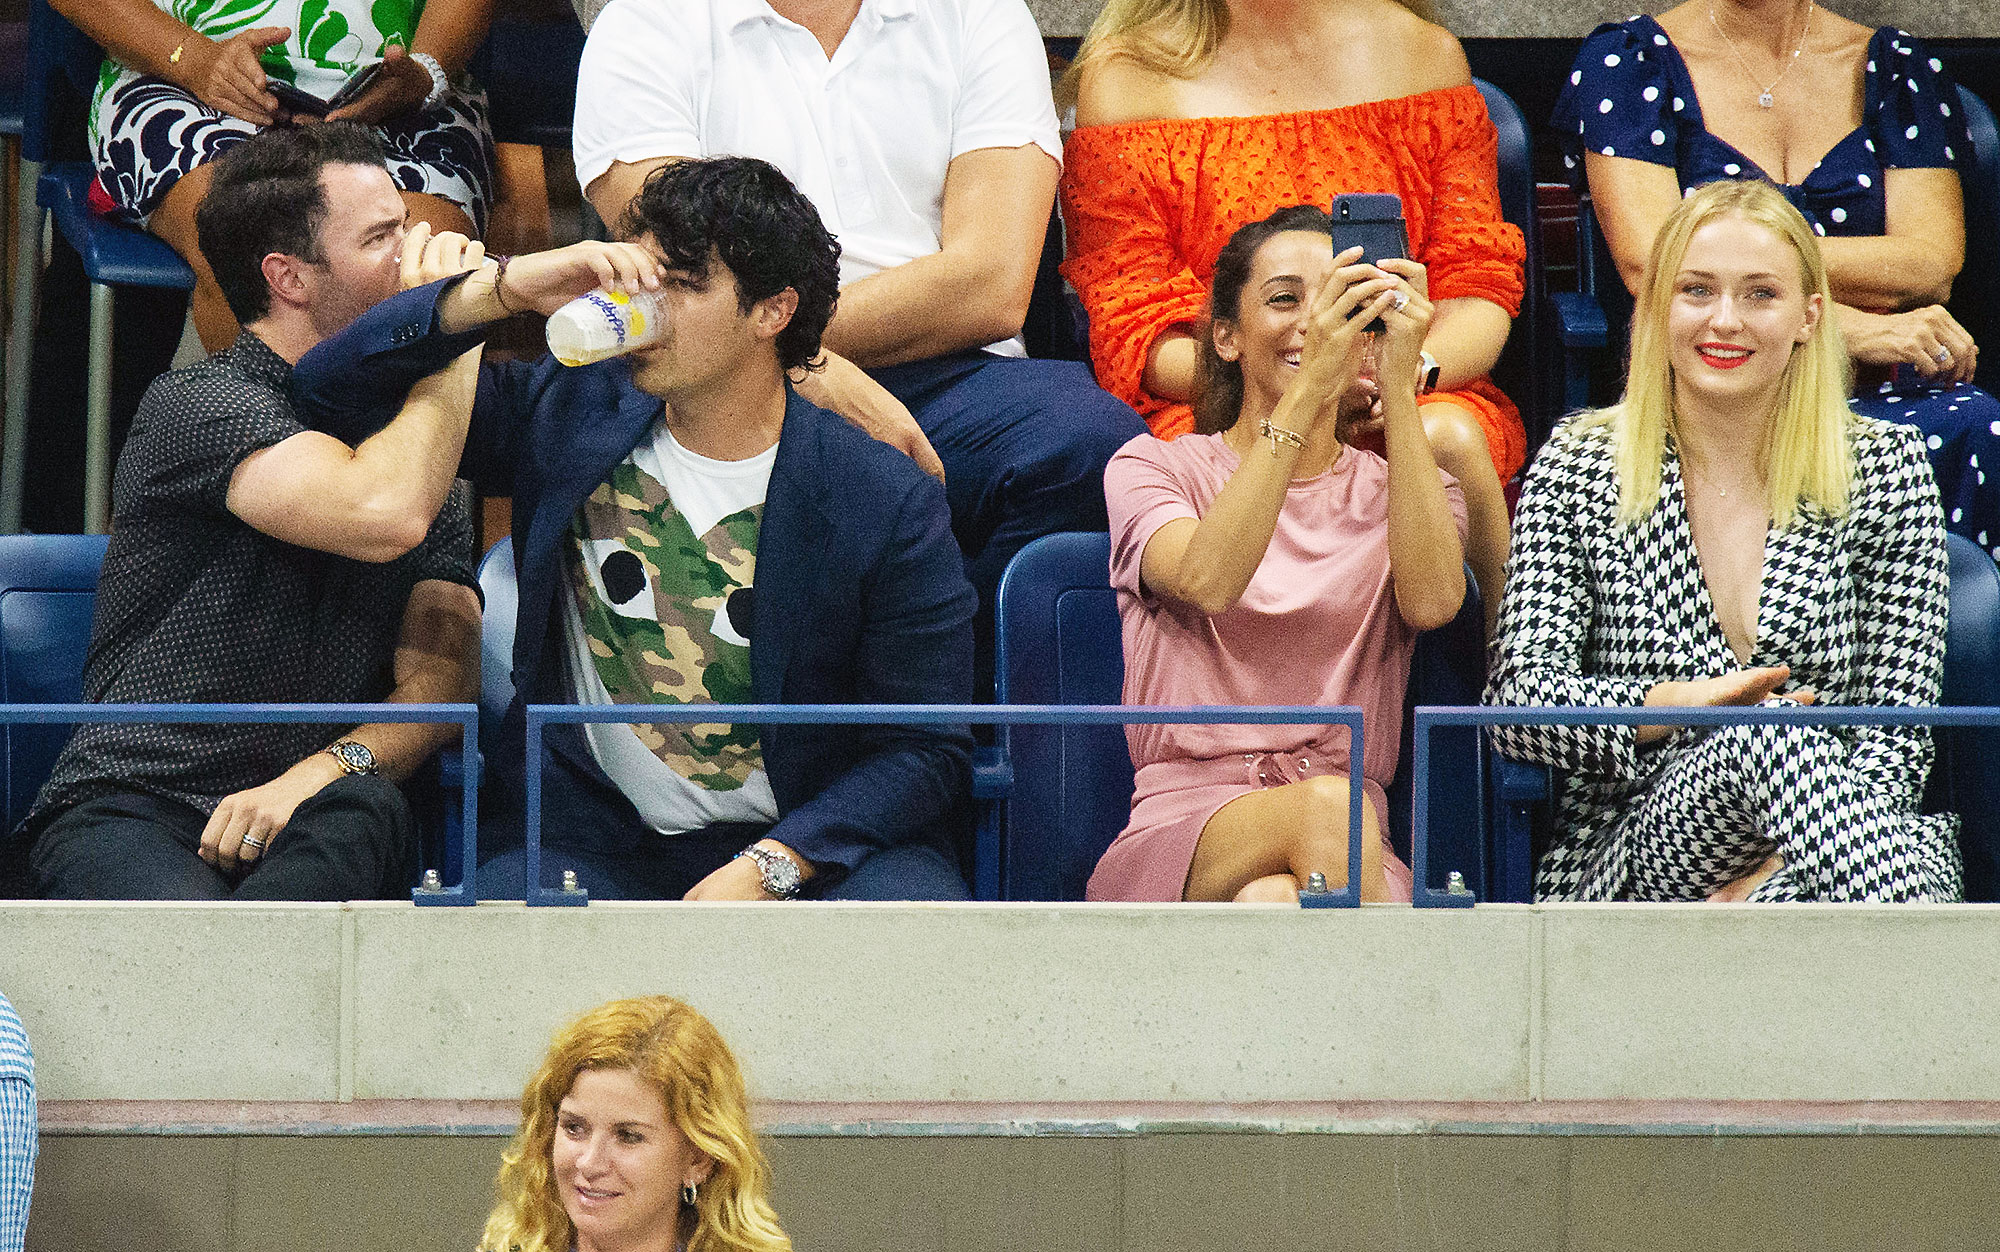 Kevin Jonas Joe Jonas Danielle Jonas Sophie Turner Us Open 2018 - The eldest Jonas Brothers chugged beers while Kevin's wife, Danielle, captured the viral moment and the Game of Thrones actress — who is engaged to Joe — watched with a smile on September 3.